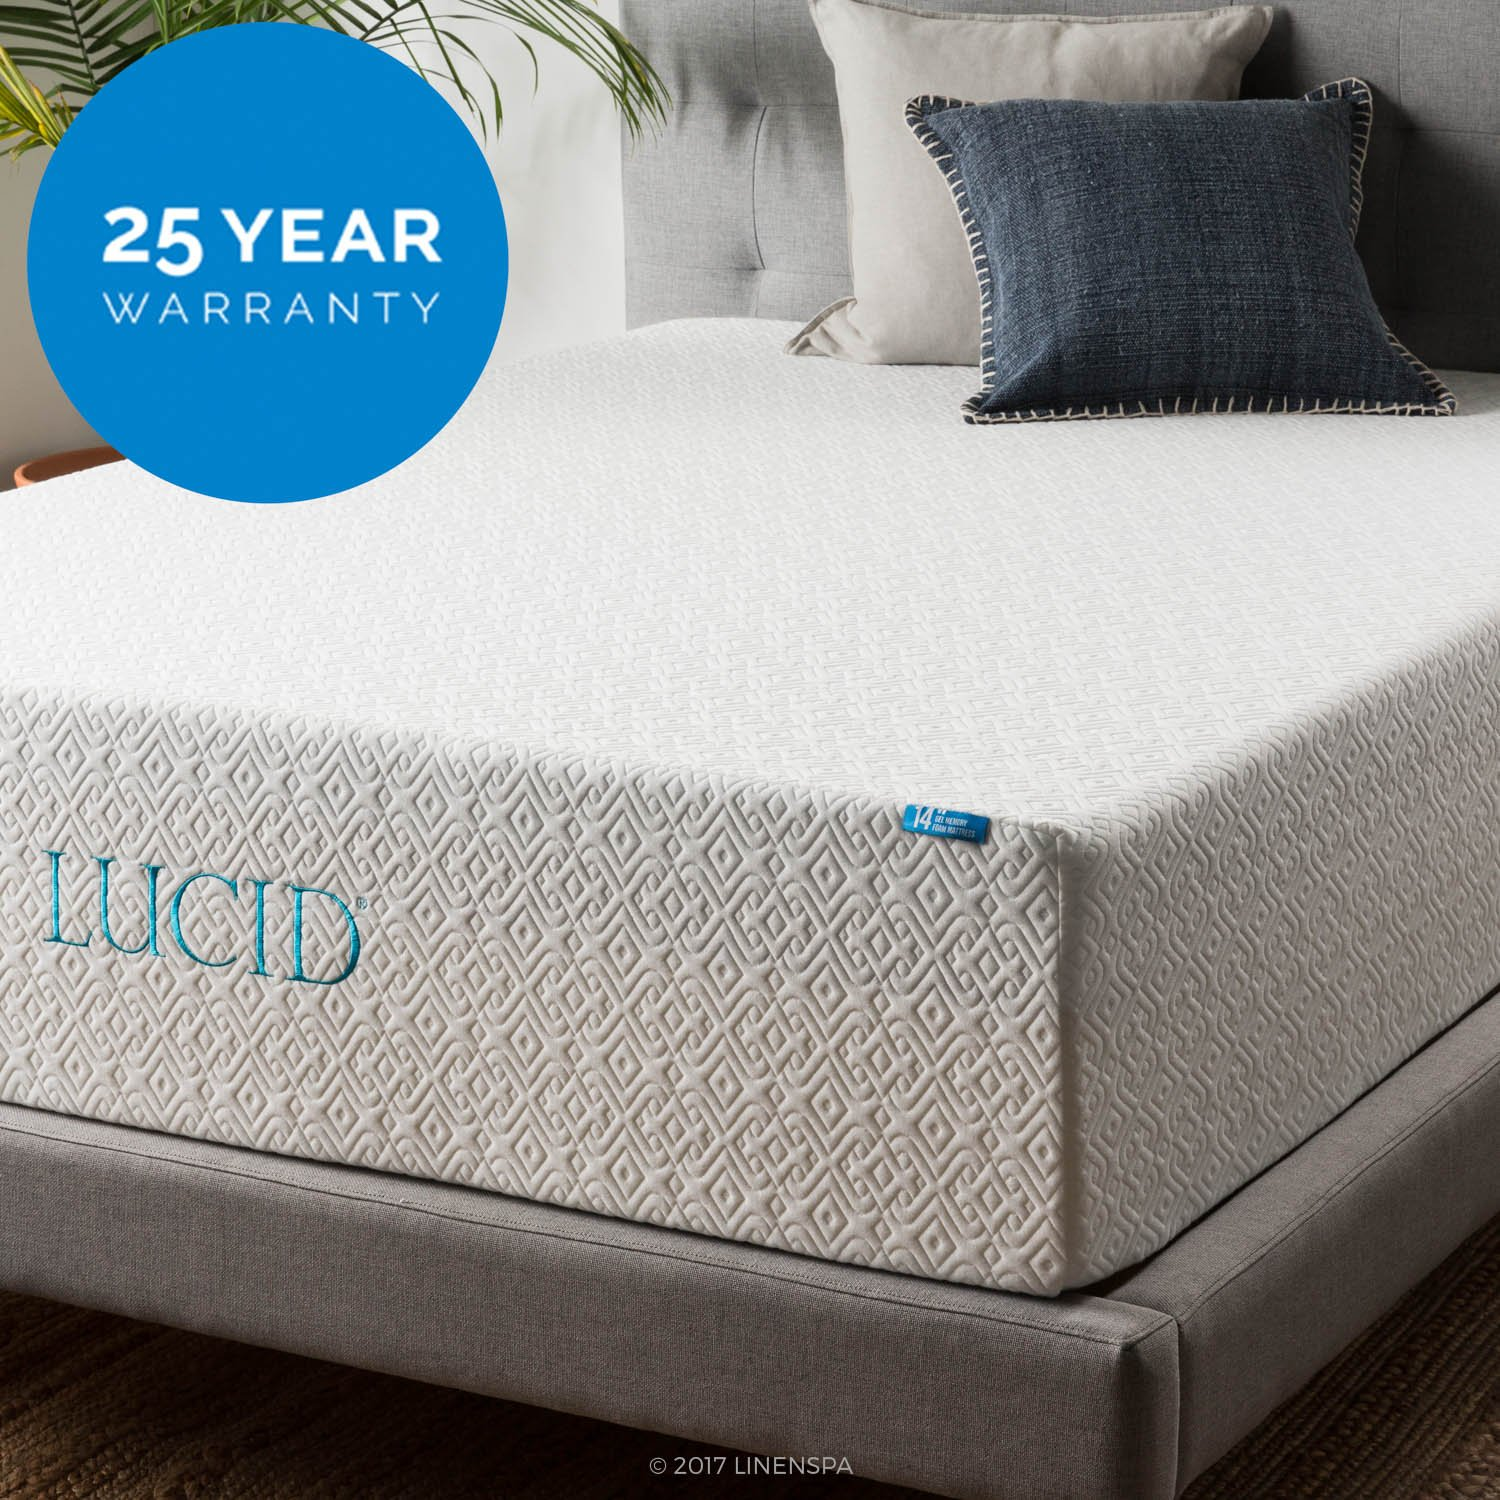 Lucid 14 Inch Mattress Triple Layer 5 3 Pound Density Ventilated